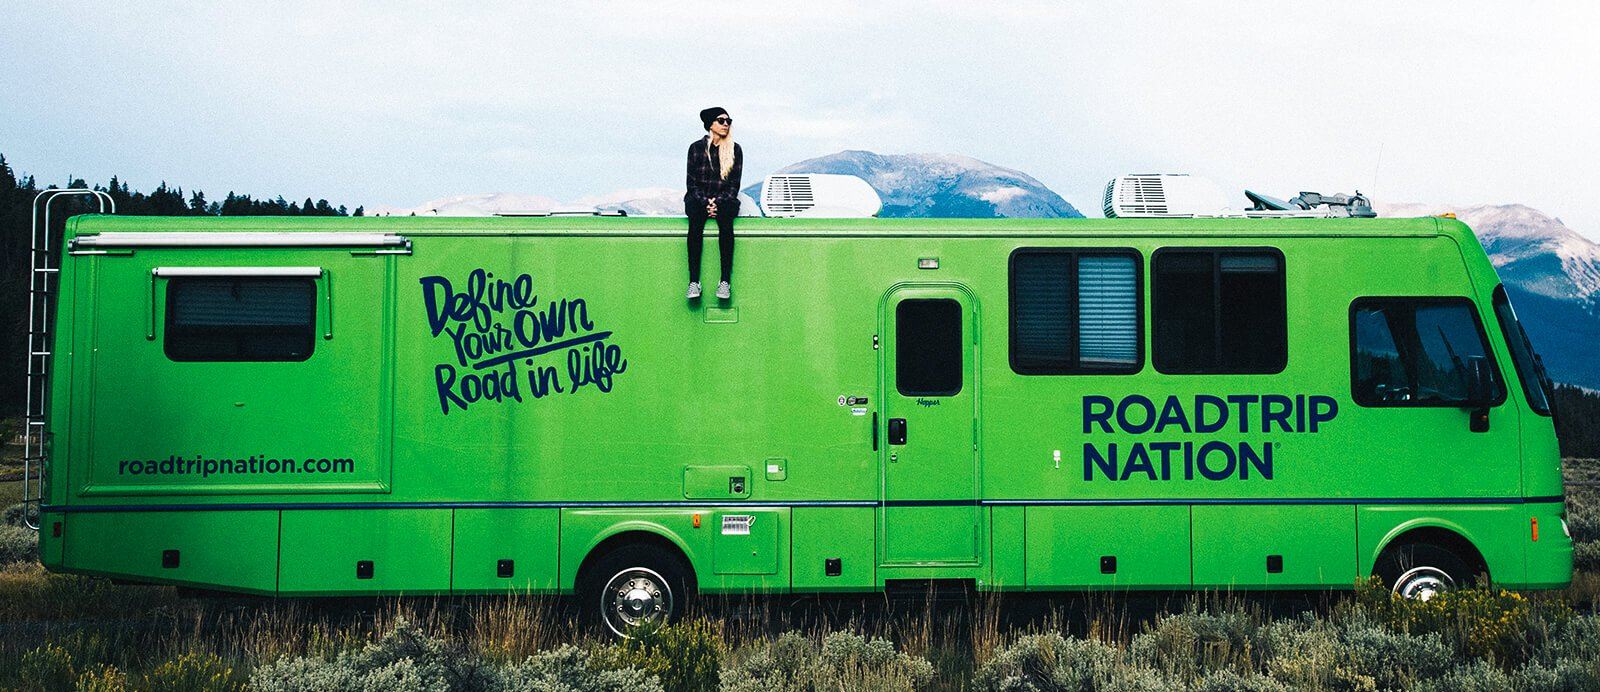 A young woman sits on top of the Roadtrip Nation green RV.